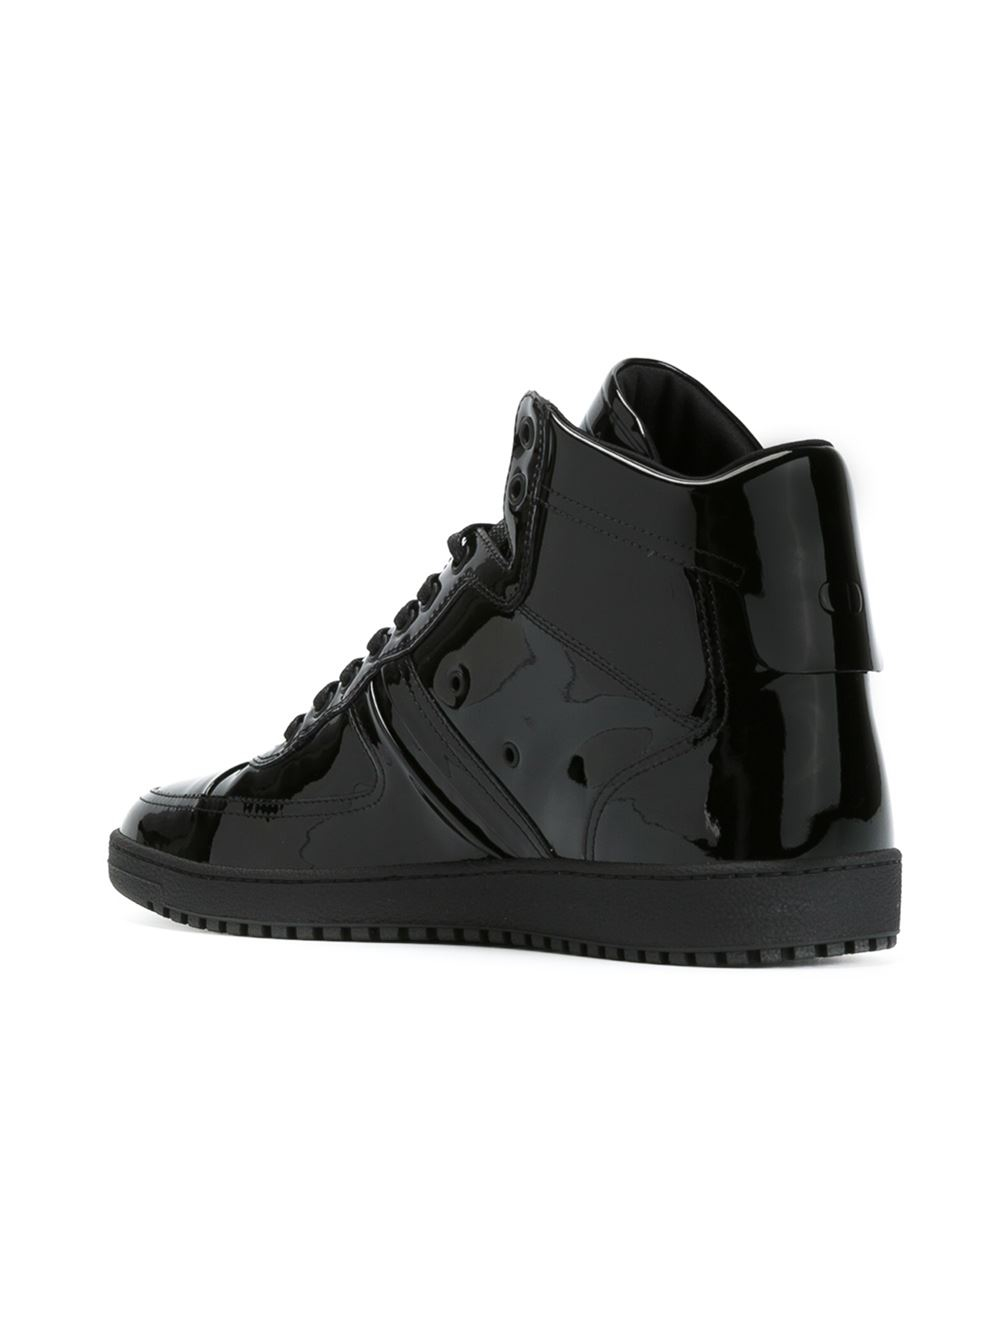 cheap discount cheap sale prices Christian Dior Leather High-Top Sneakers professional online qlVySn